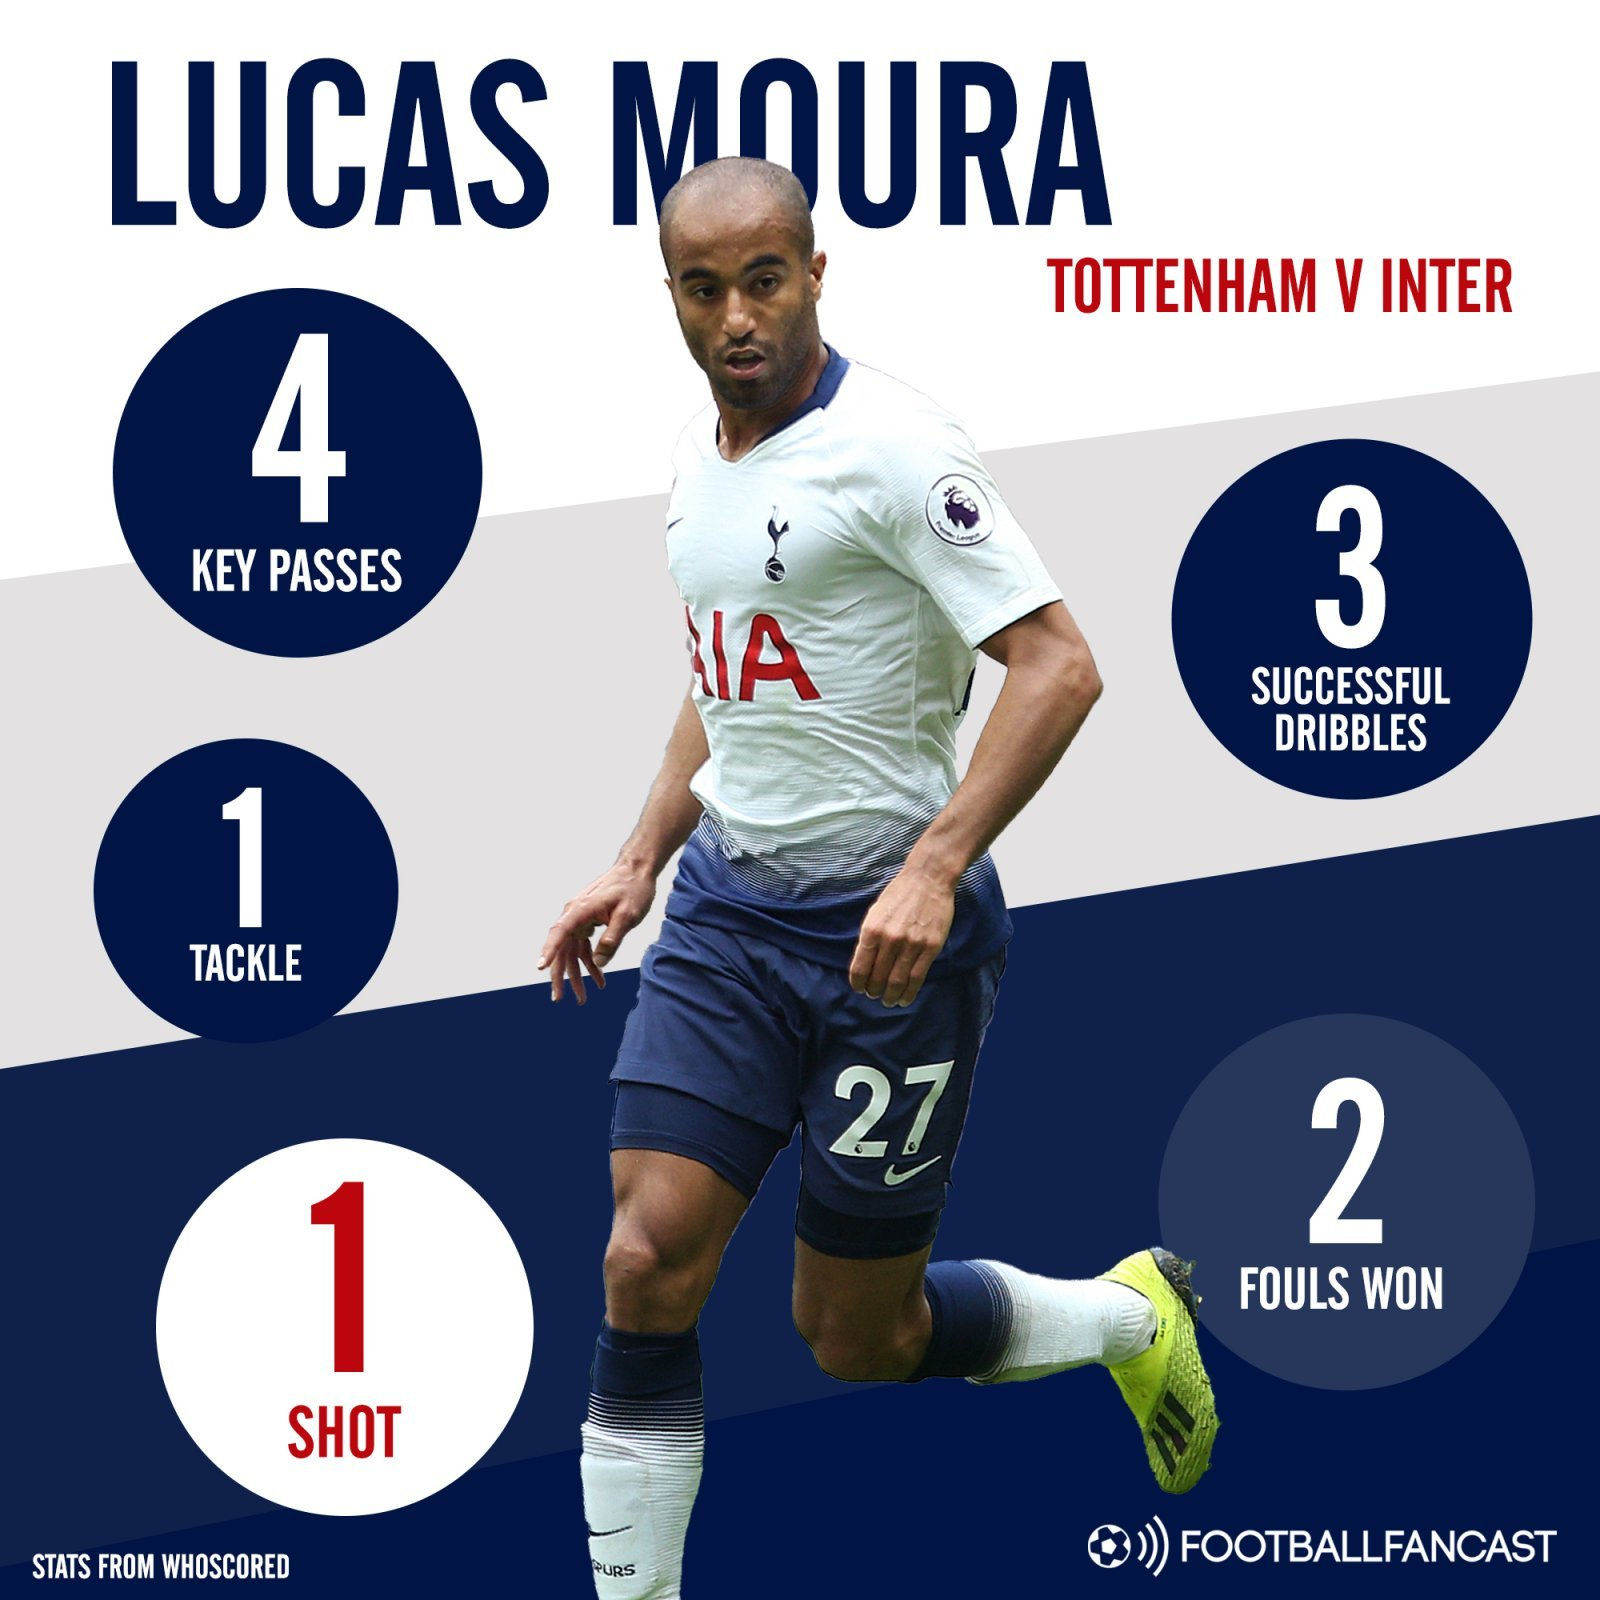 Lucas Moura's game versus Inter Milan in numbers